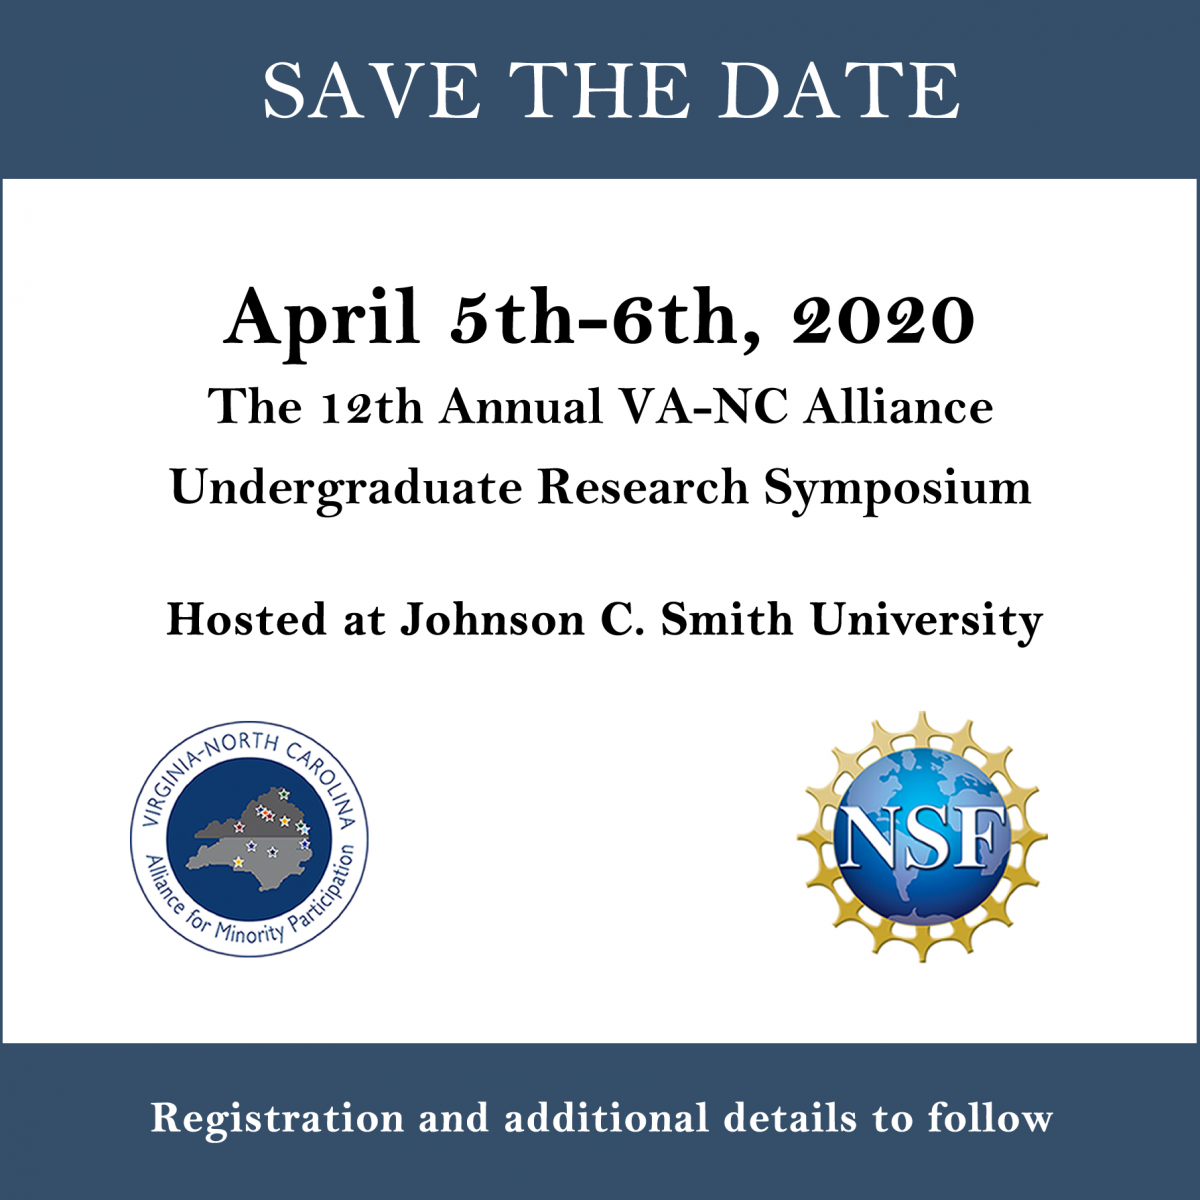 2020 VA-NC Alliance Save the Date graphic